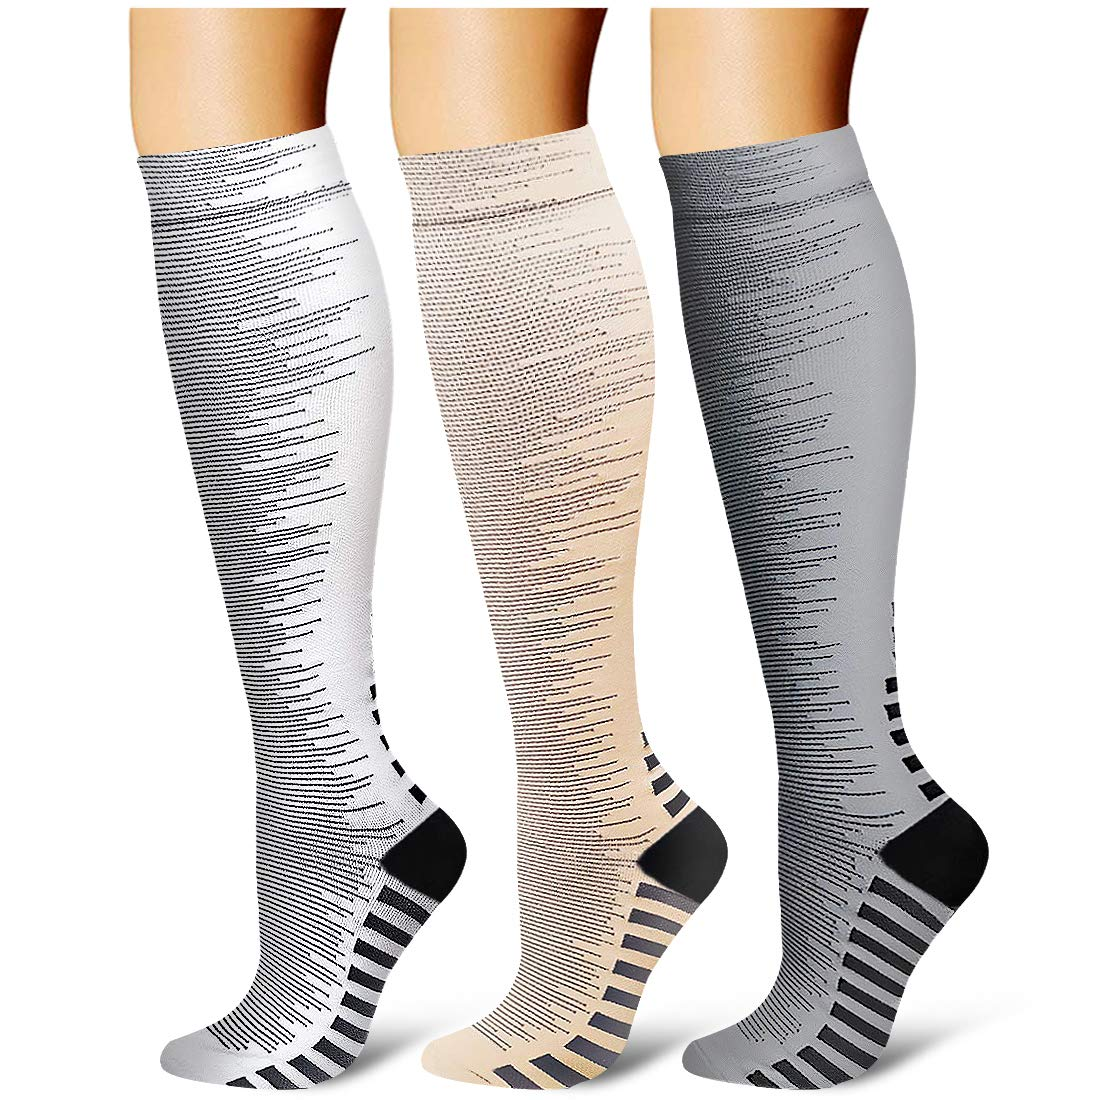 Compression Socks,(3 Pairs) Compression Sock Women & Men - Best Running, Athletic Sports, Crossfit, Flight Travel (Multti-colors26, Large/X-Large) by Laite Hebe